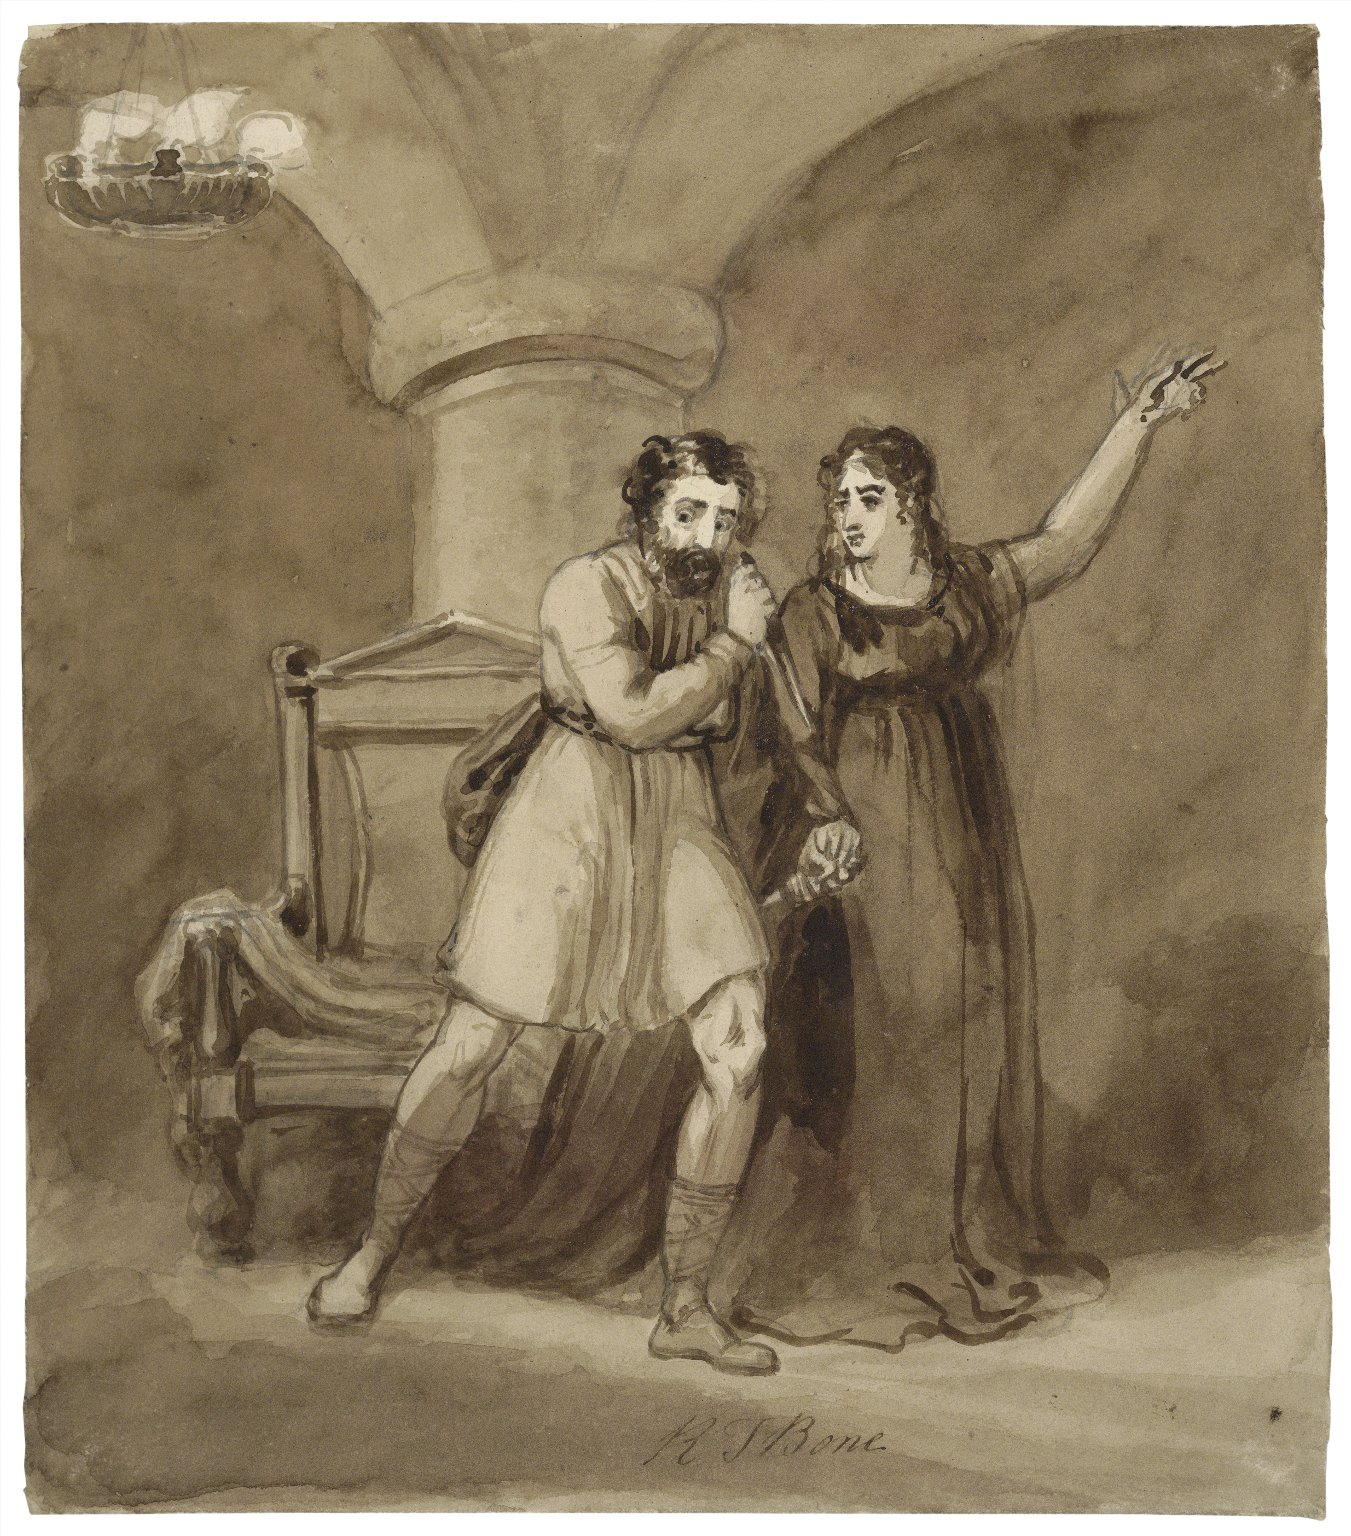 [Macbeth and Lady Macbeth, after the murder of Duncan] [graphic] / R.T. Bone.